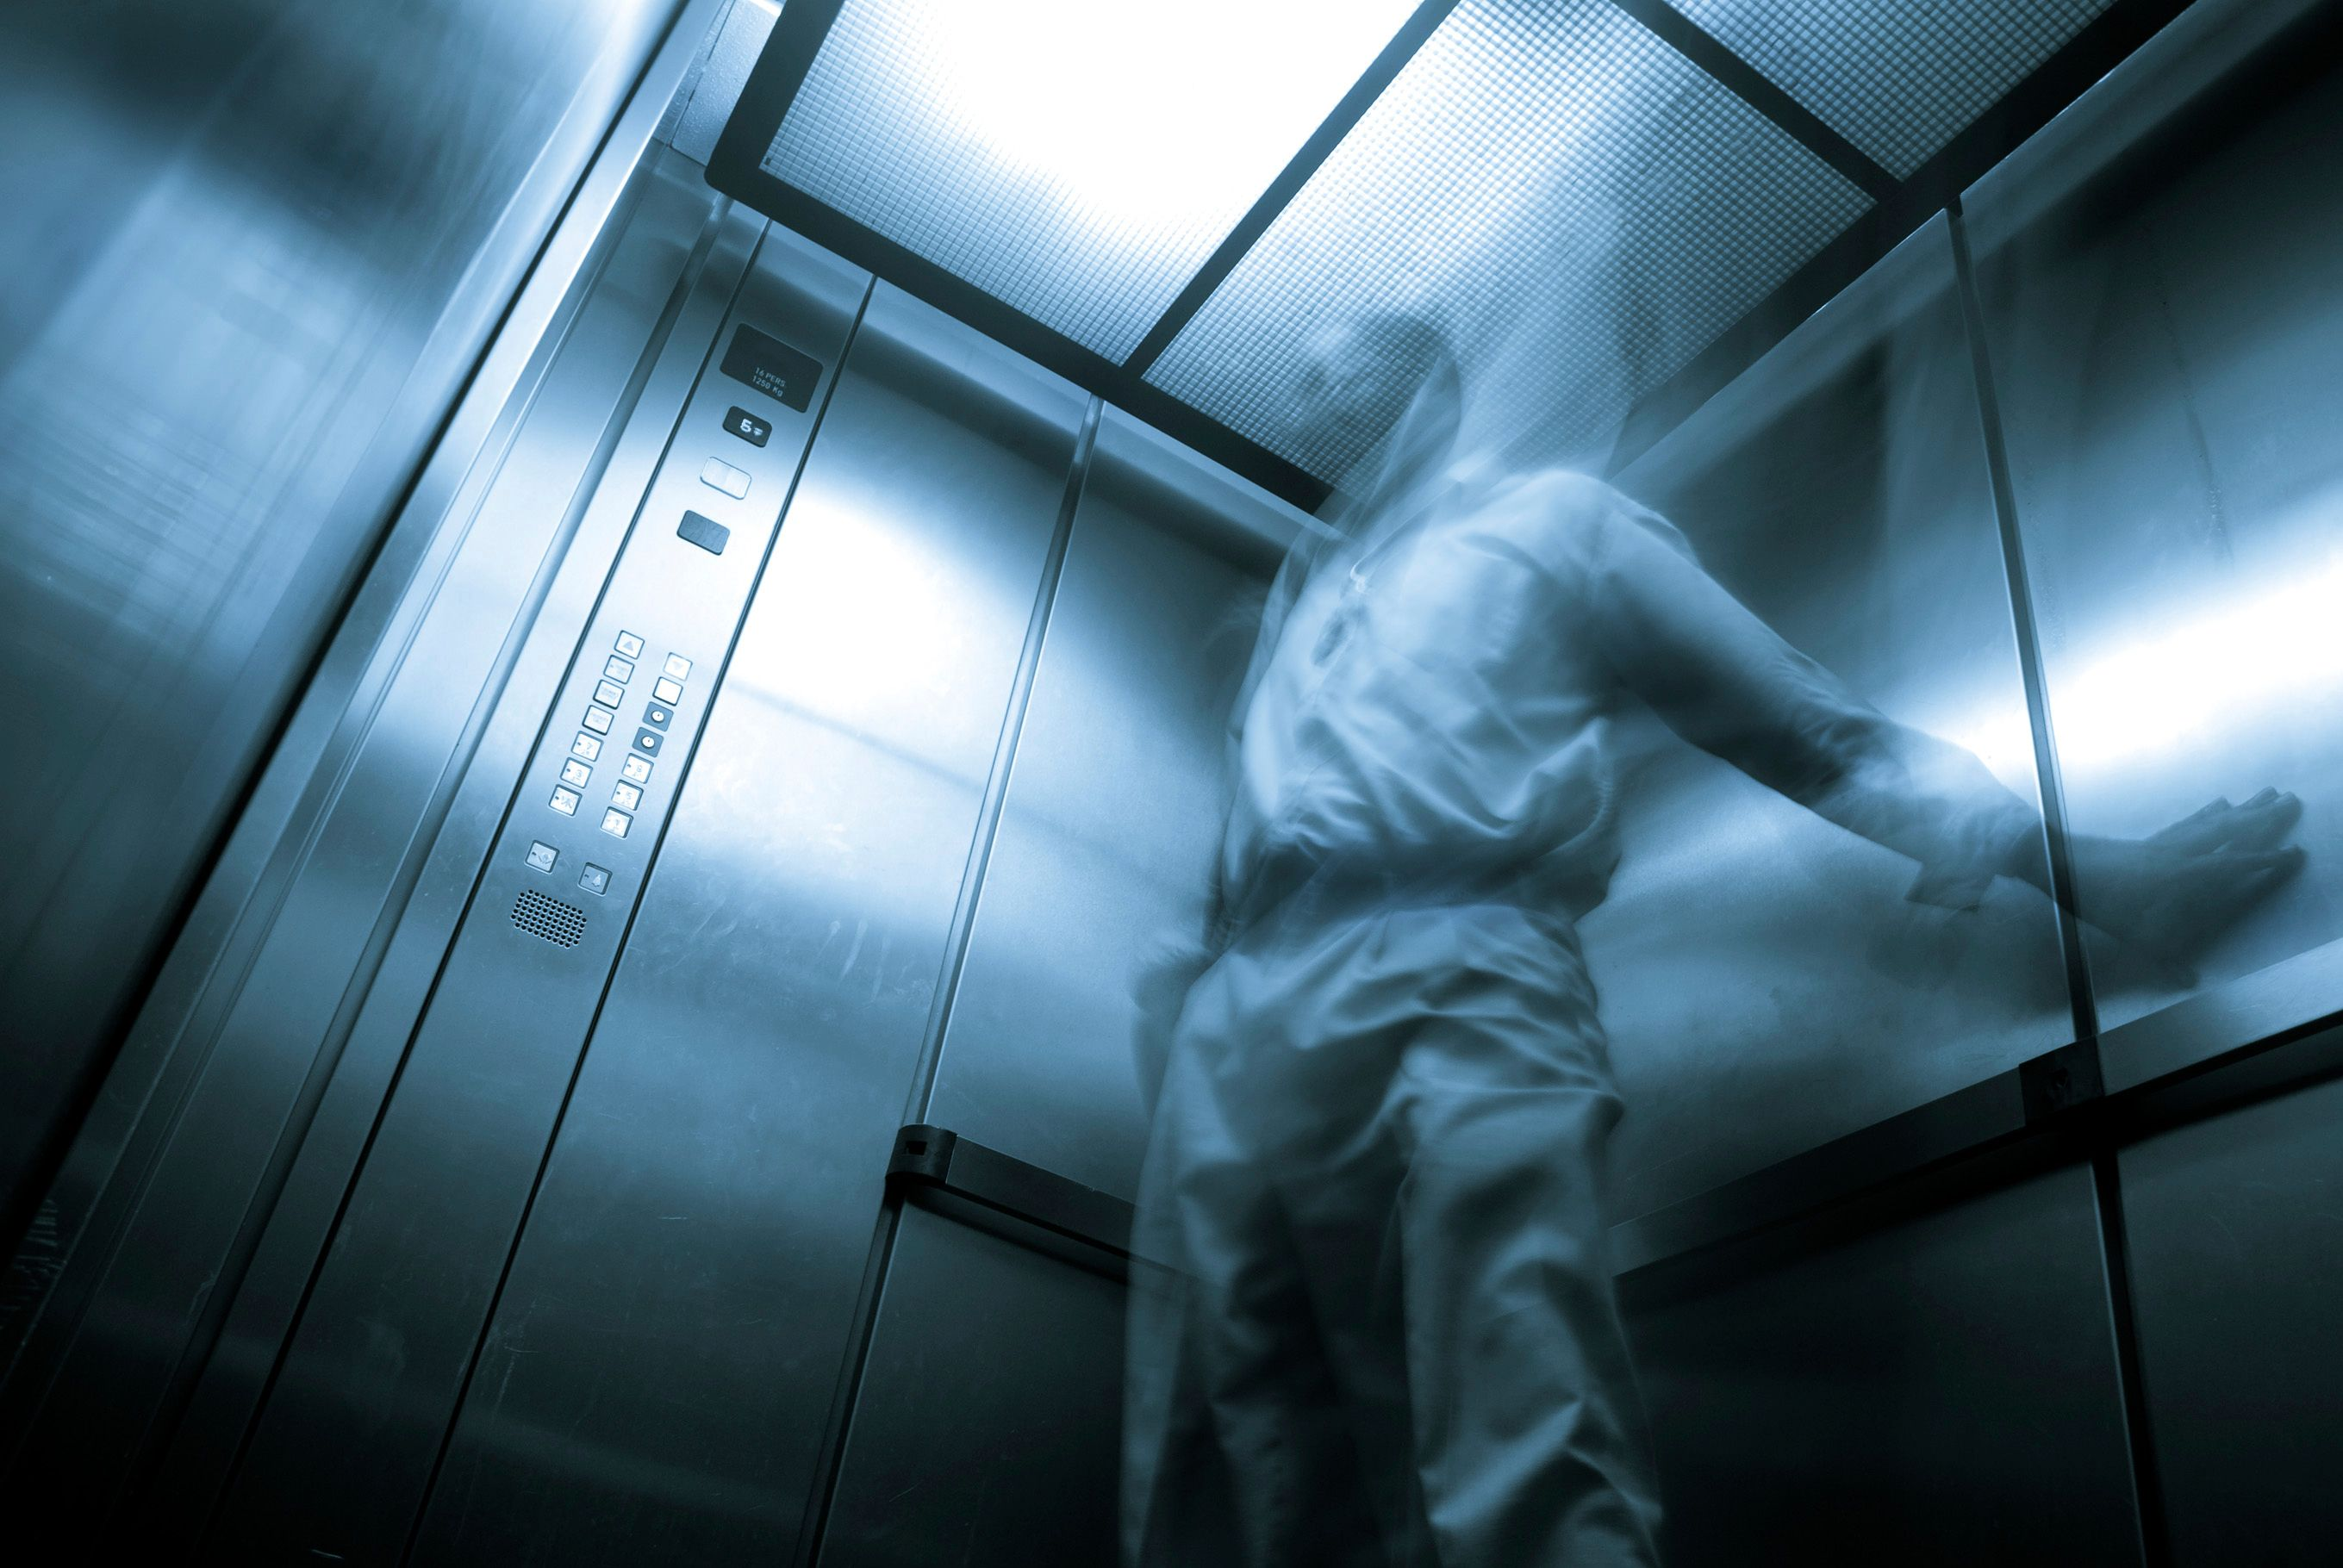 A man trapped in an elevator.